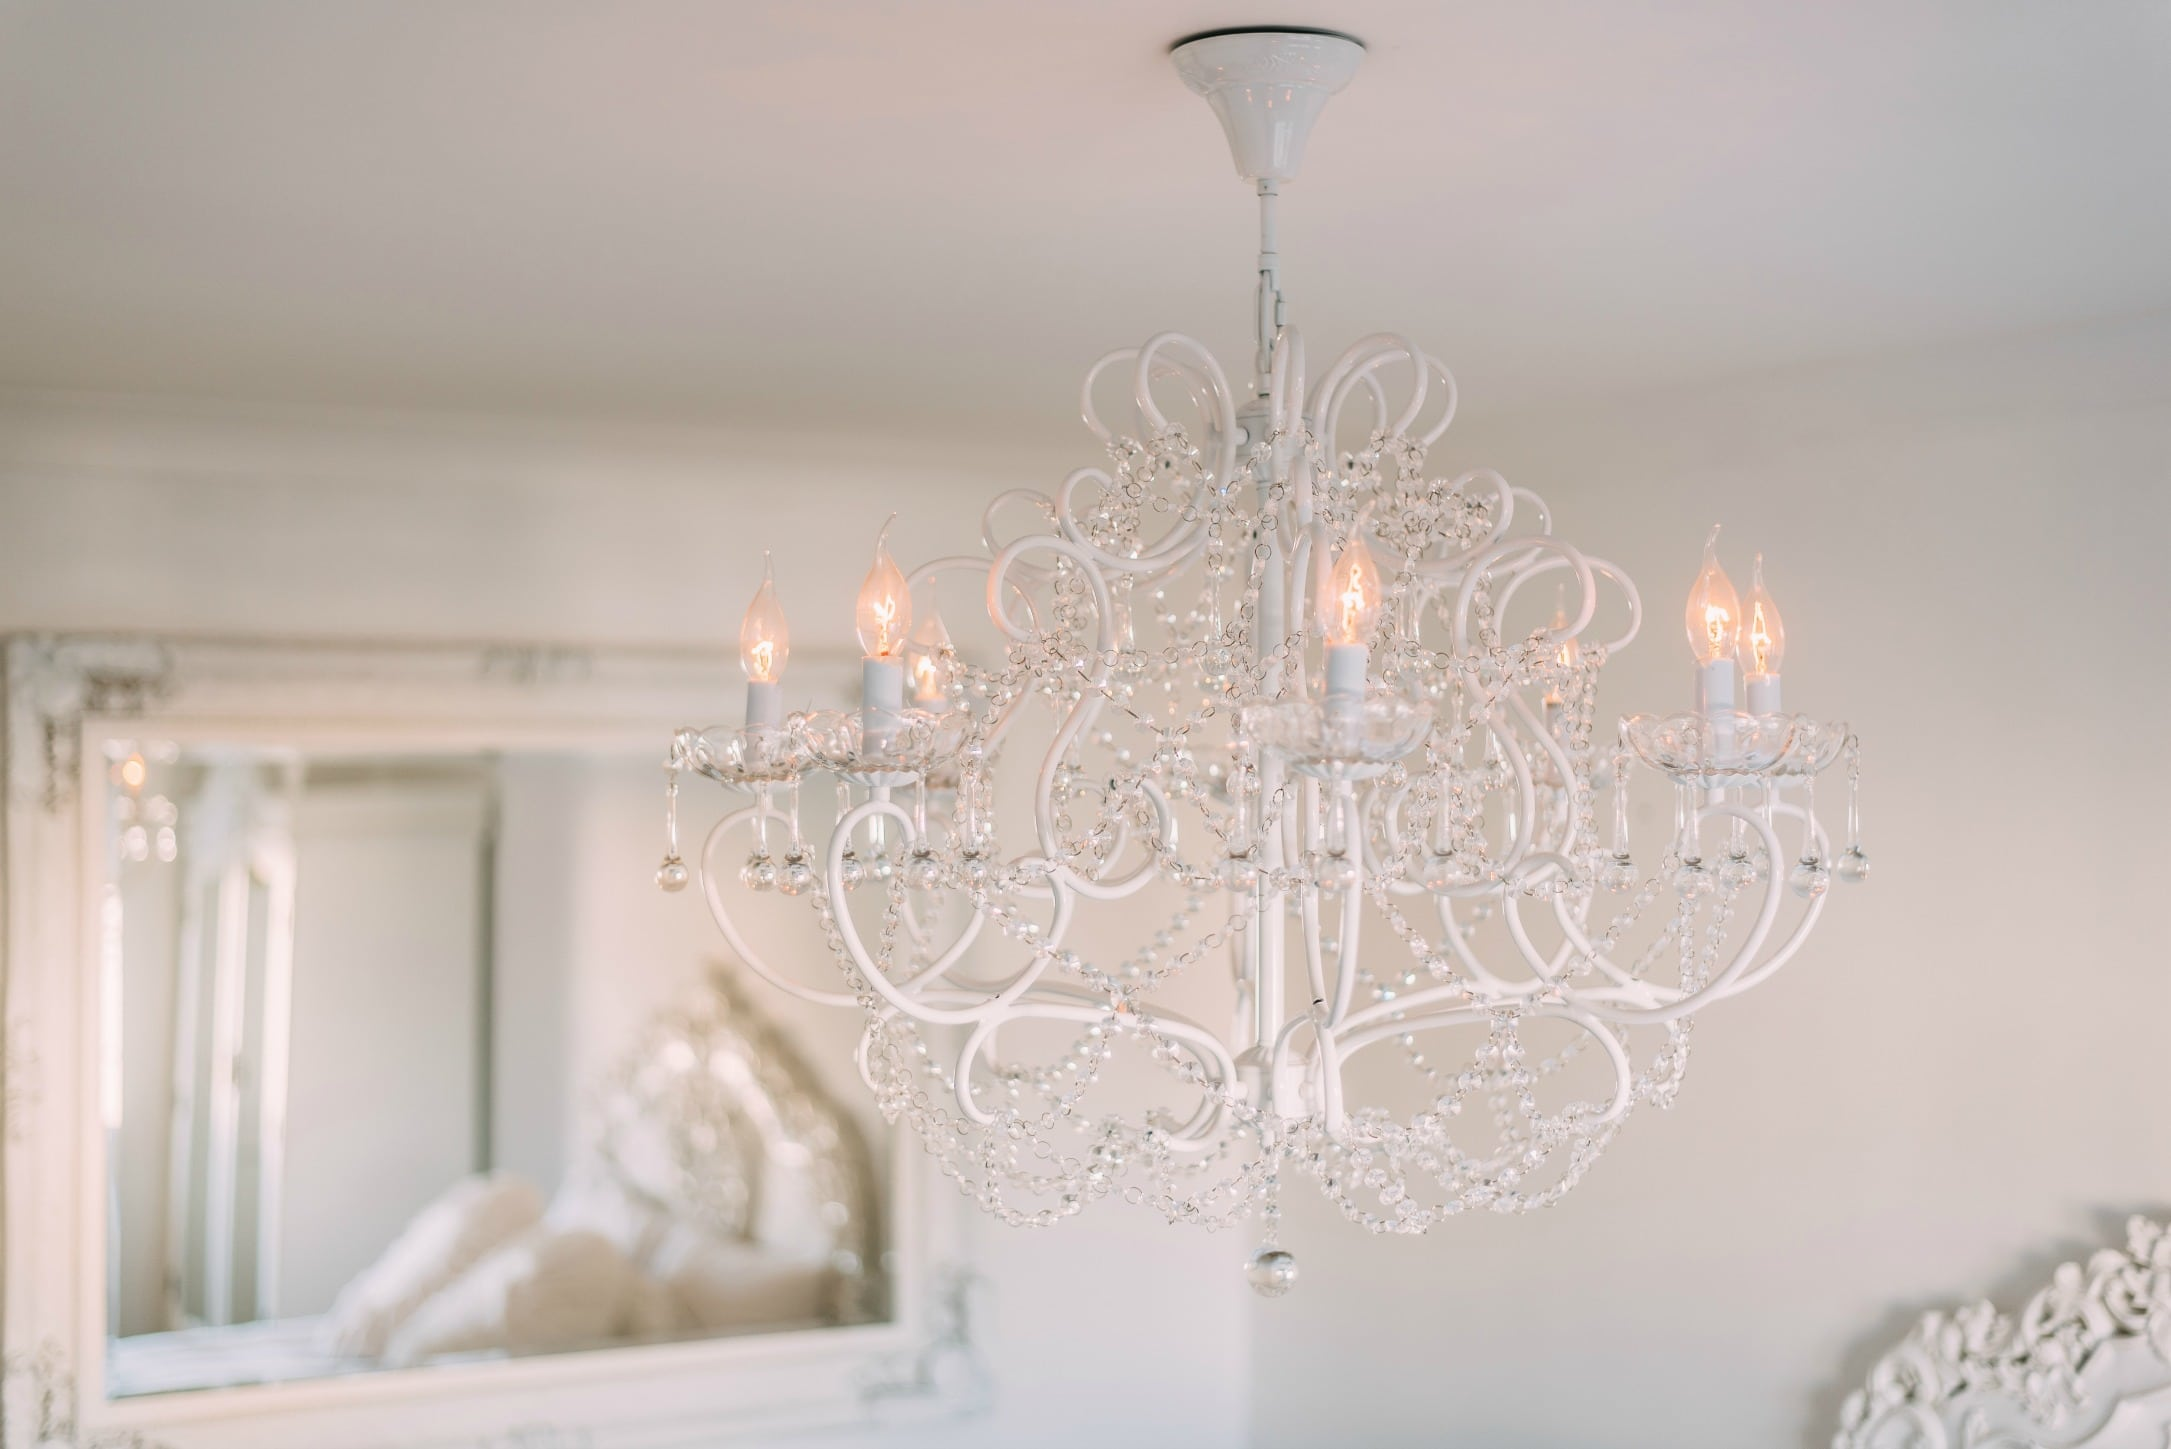 Belgian Style Large White 8 Branch Chandelier Furniture